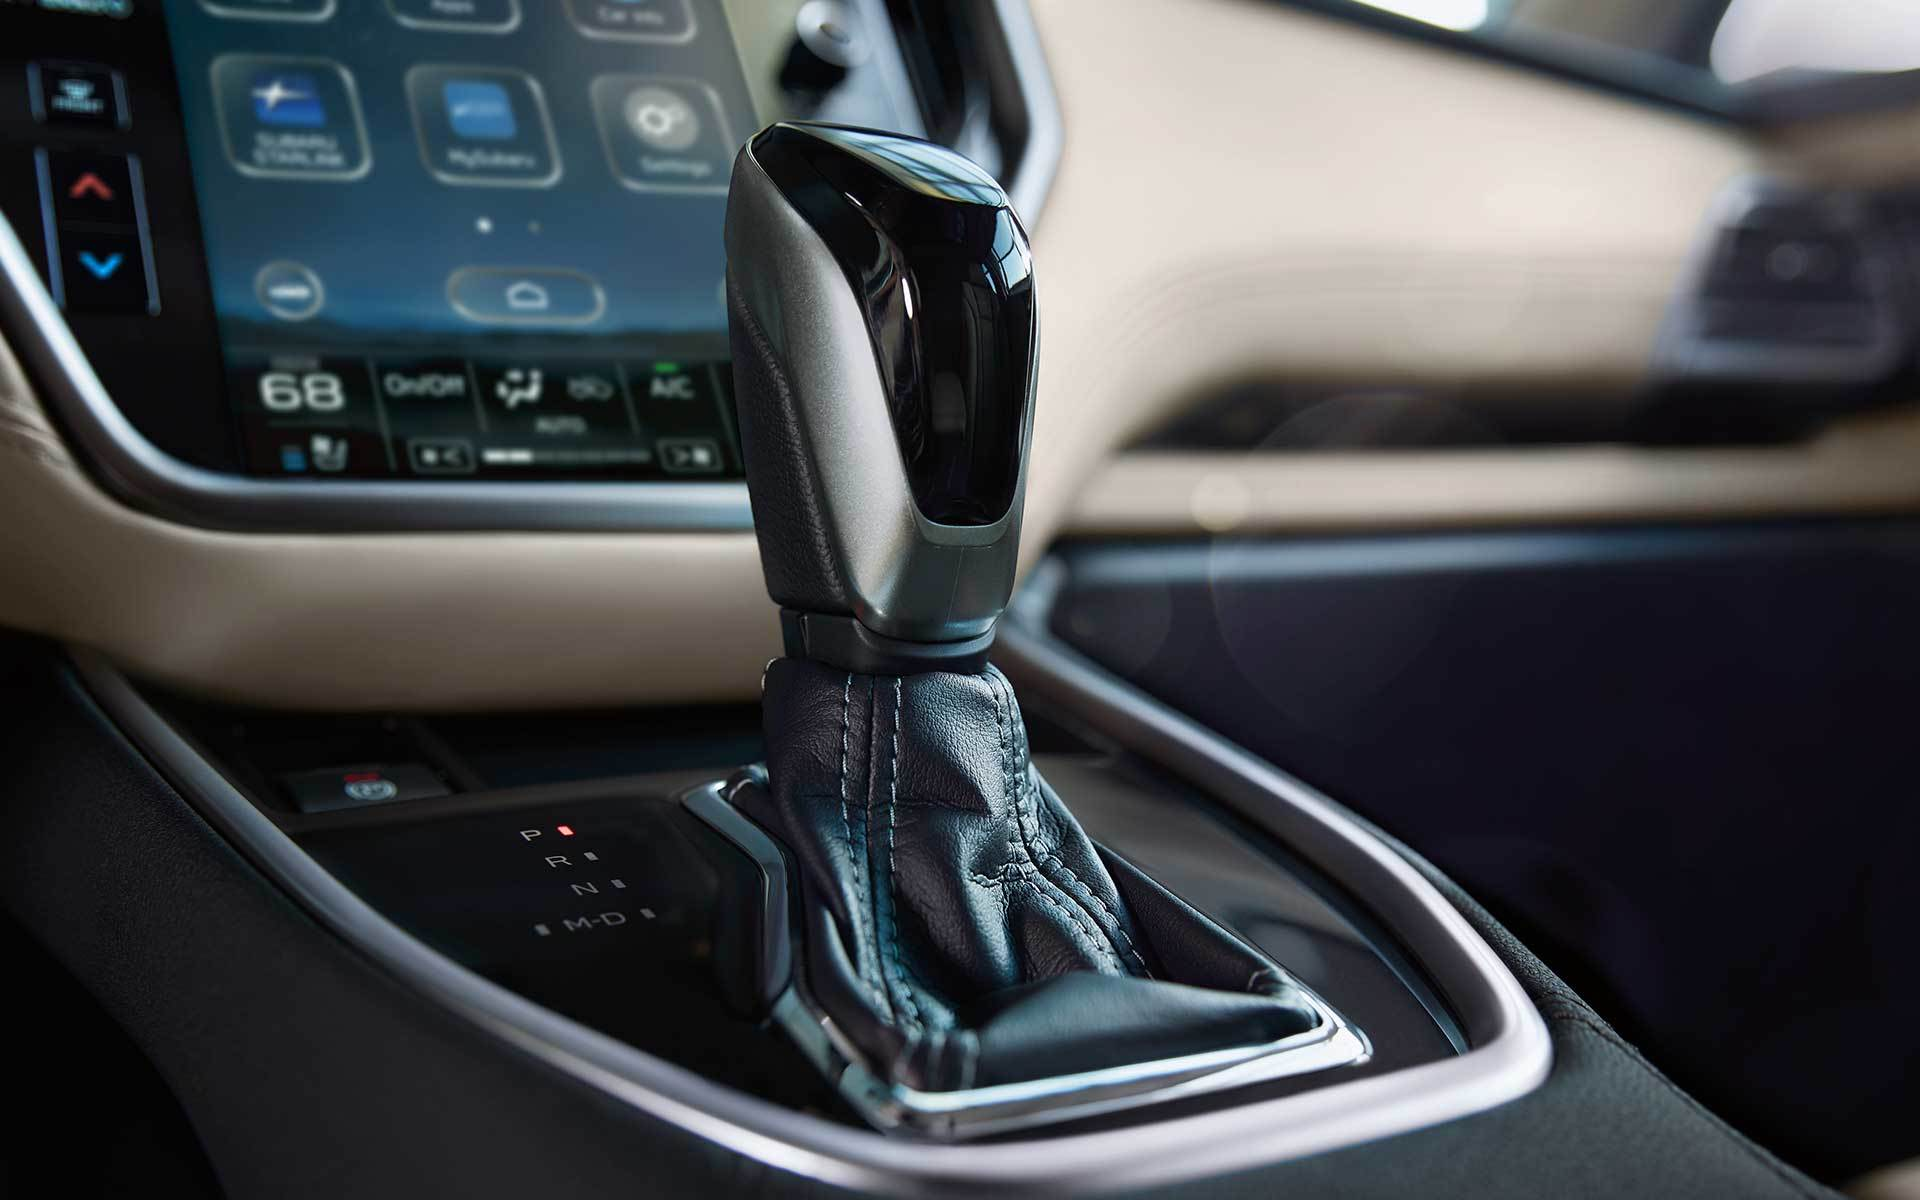 Subaru Image: Available leather-wrapped shifter with boot